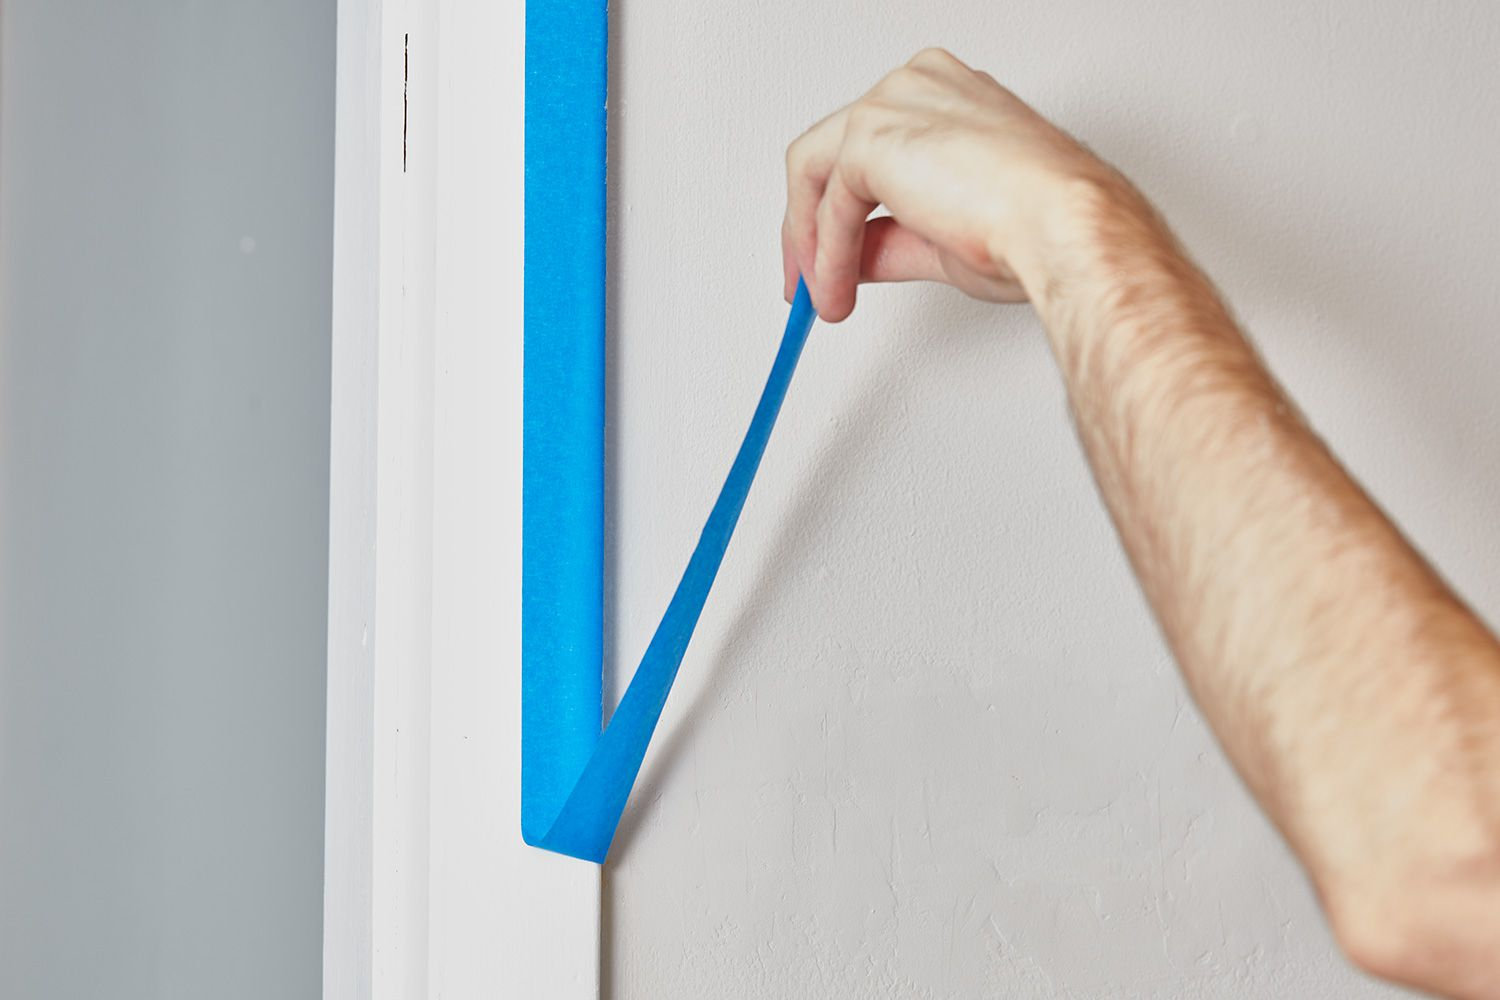 Removing painter's tape